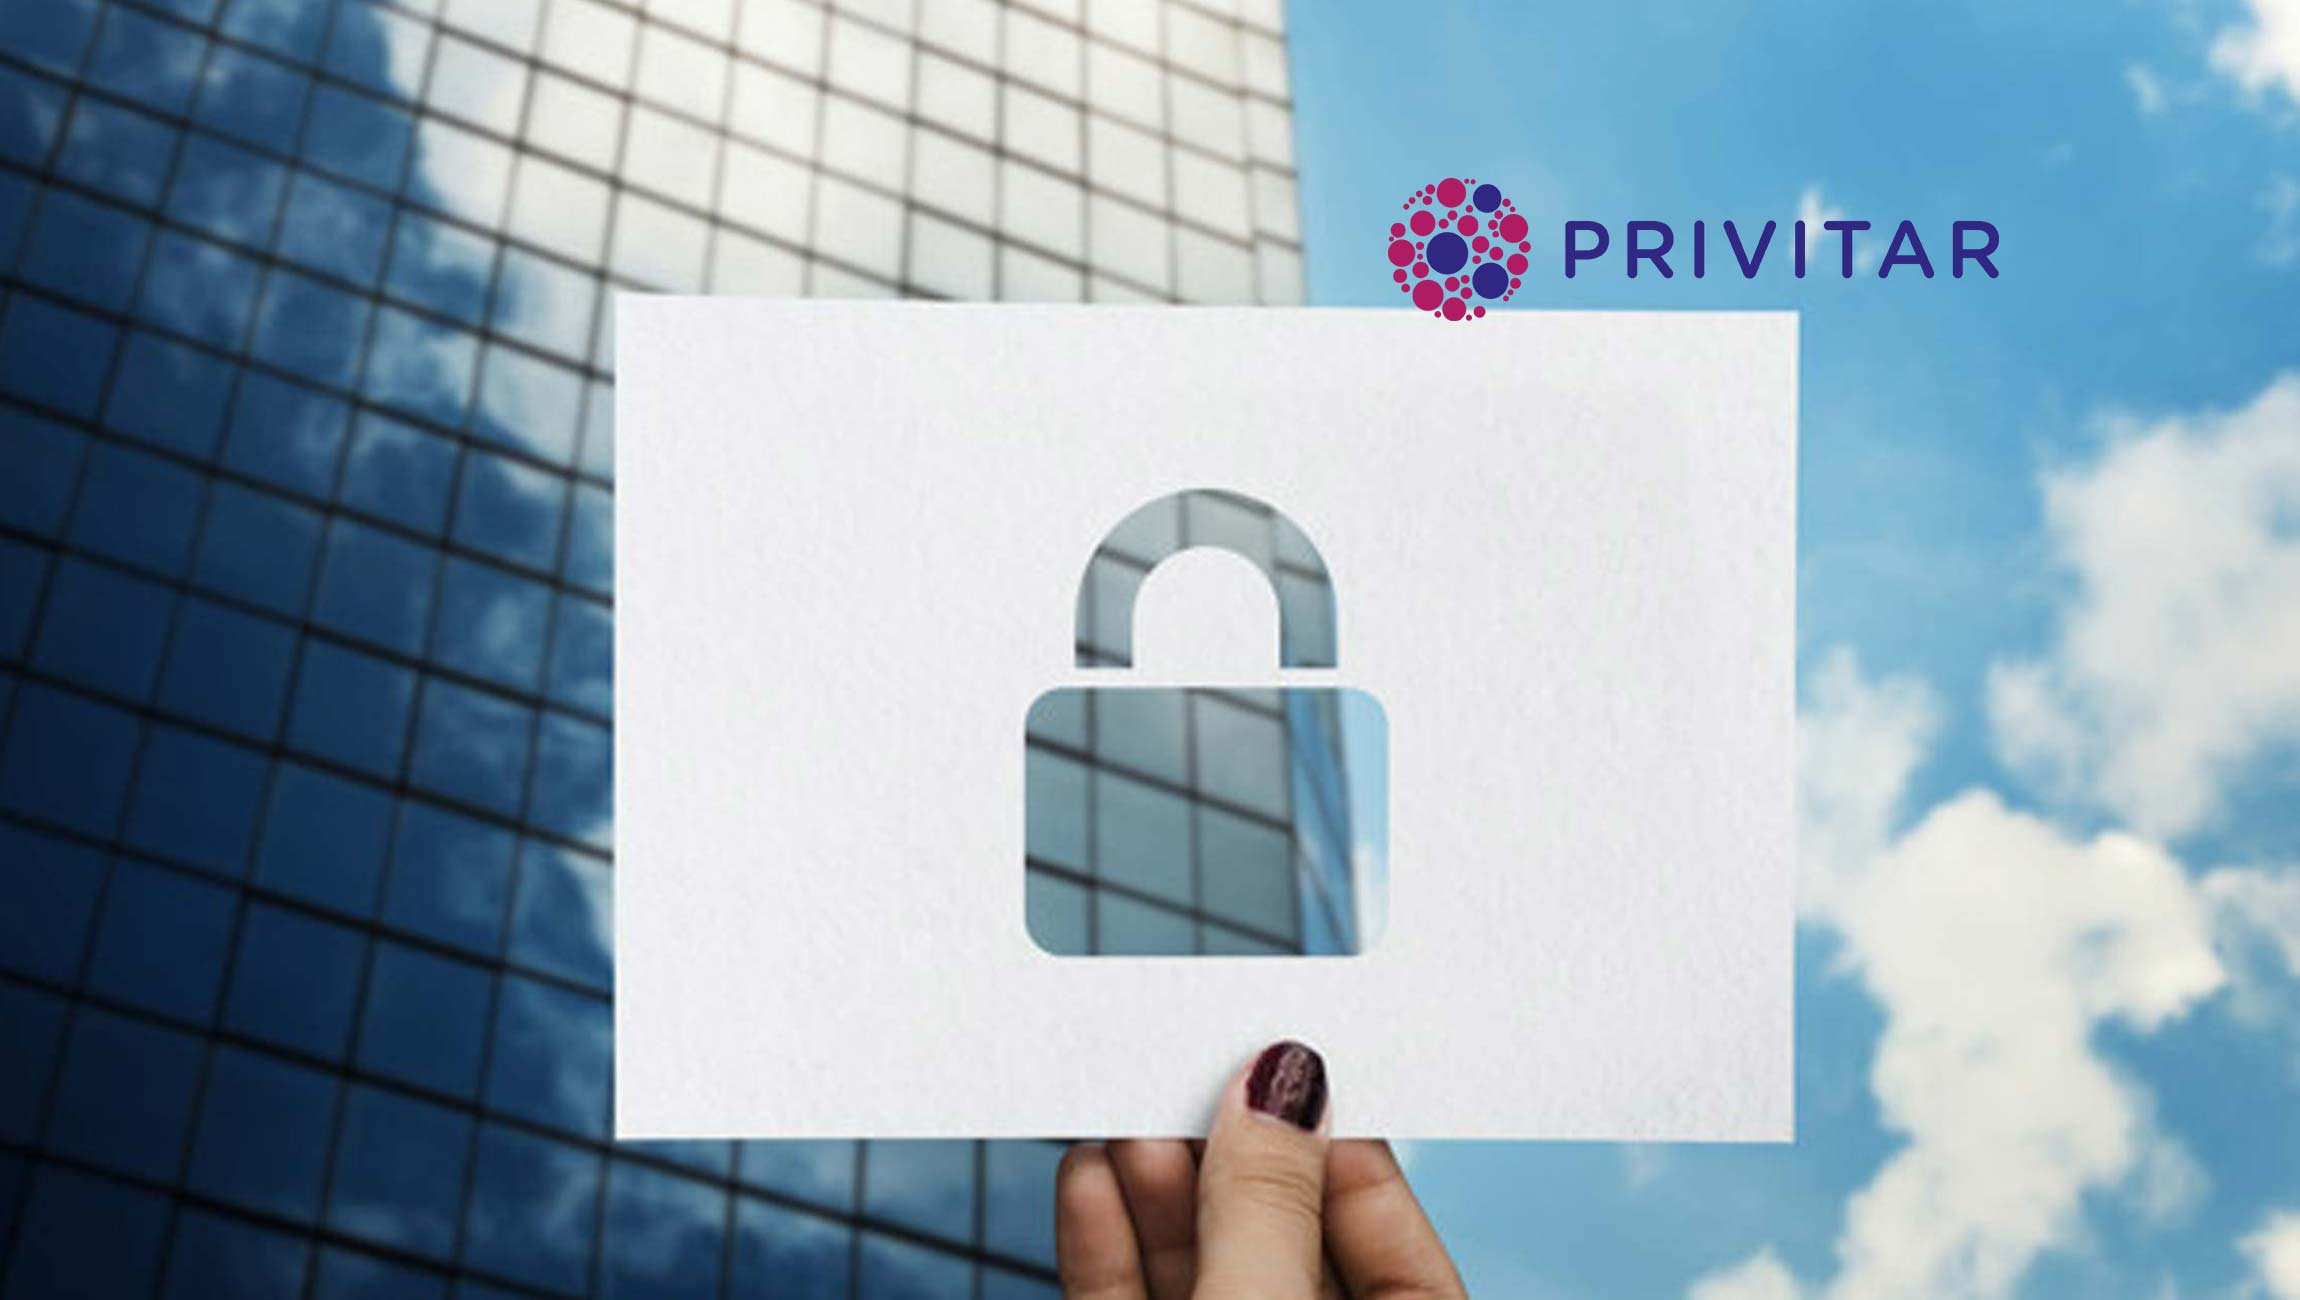 Privitar Announces New Integration with Collibra That Combines Data Intelligence and Privacy Preservation to Accelerate Access to Safe Data